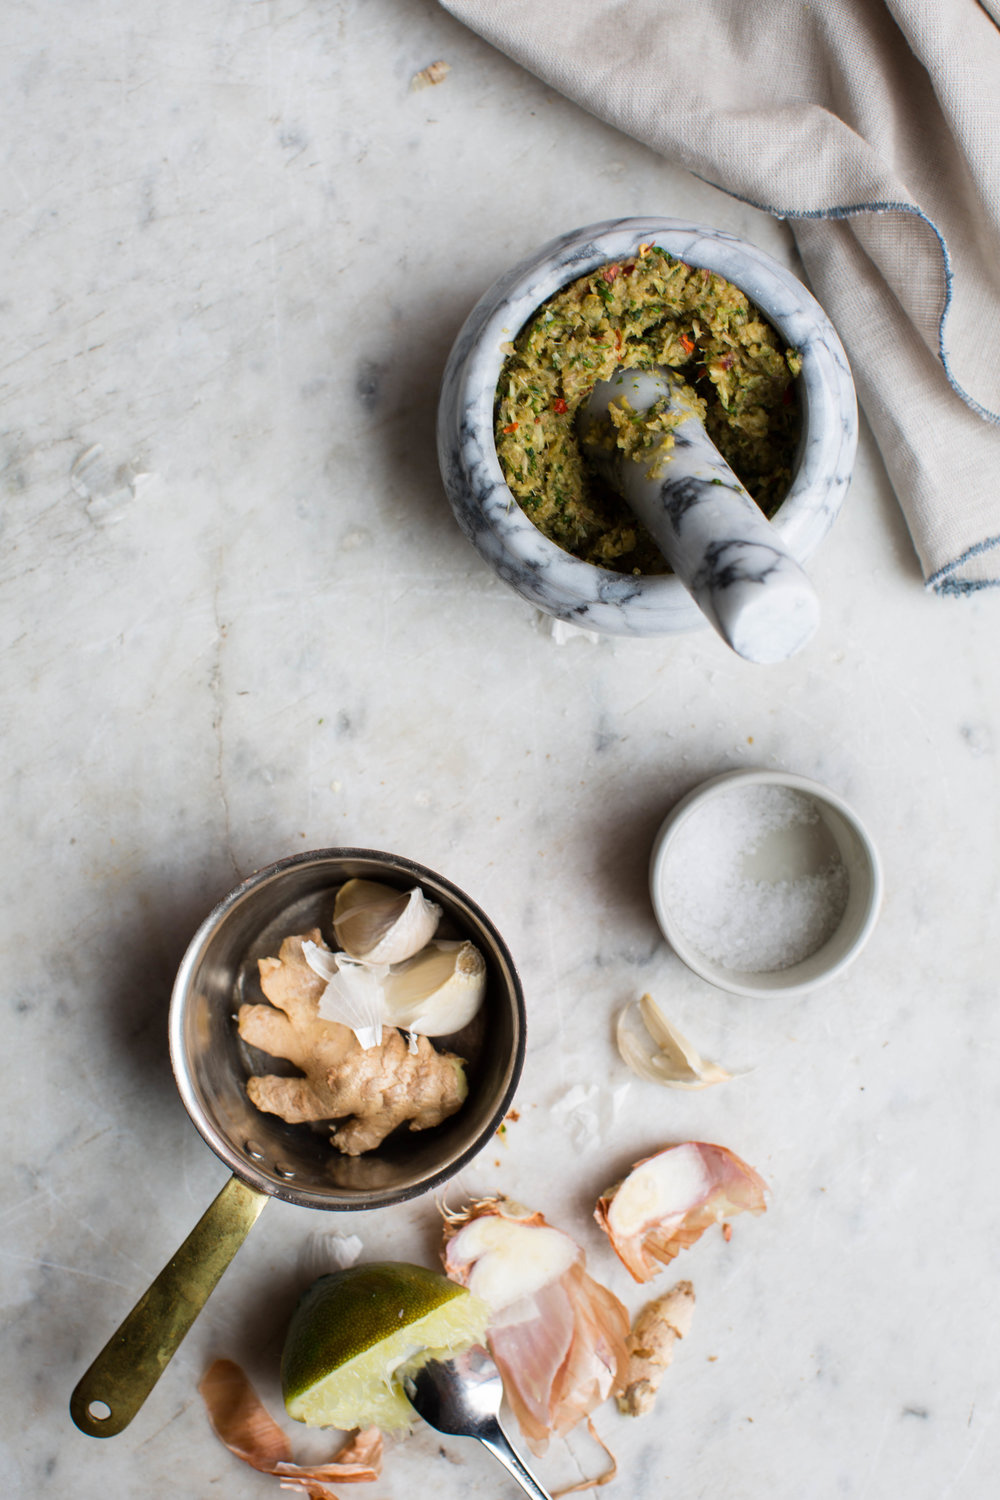 5-Thai-Style-Green-Curry-with-Homemade-Curry-Paste | www.8thandlake.com.jpg